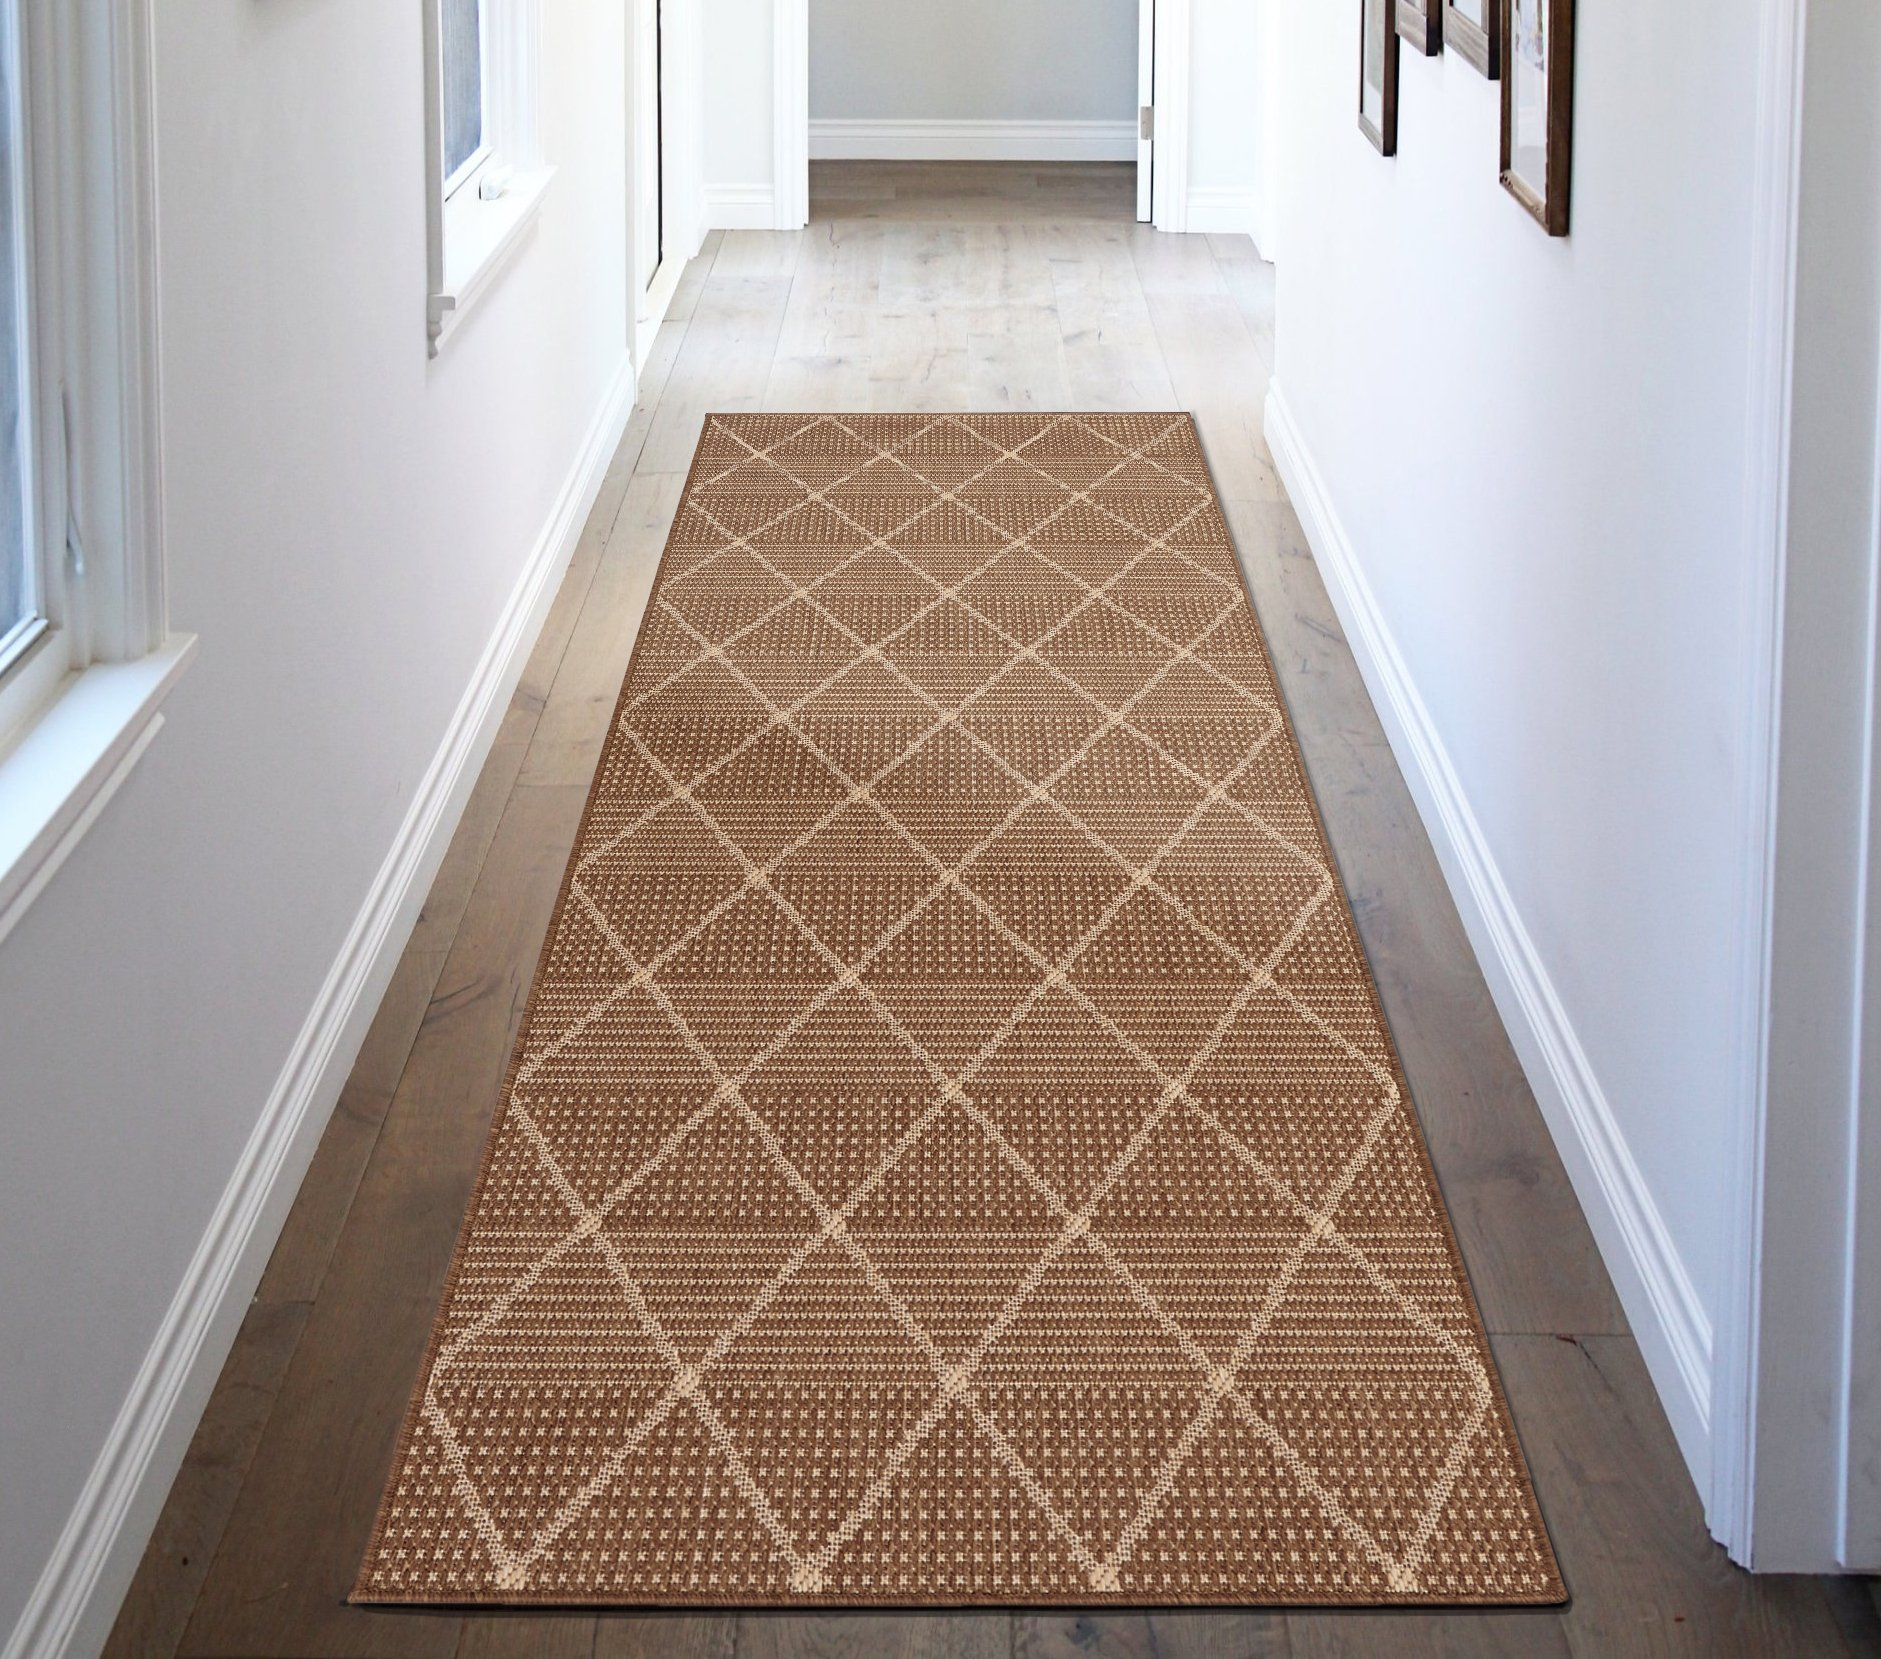 Ottomanson Jardin Collection Contemporary Trellis Design Indoor/Outdoor Jute Backing Synthetic Sisal Runner Rug, 2'7'' x 7'0'', Brown